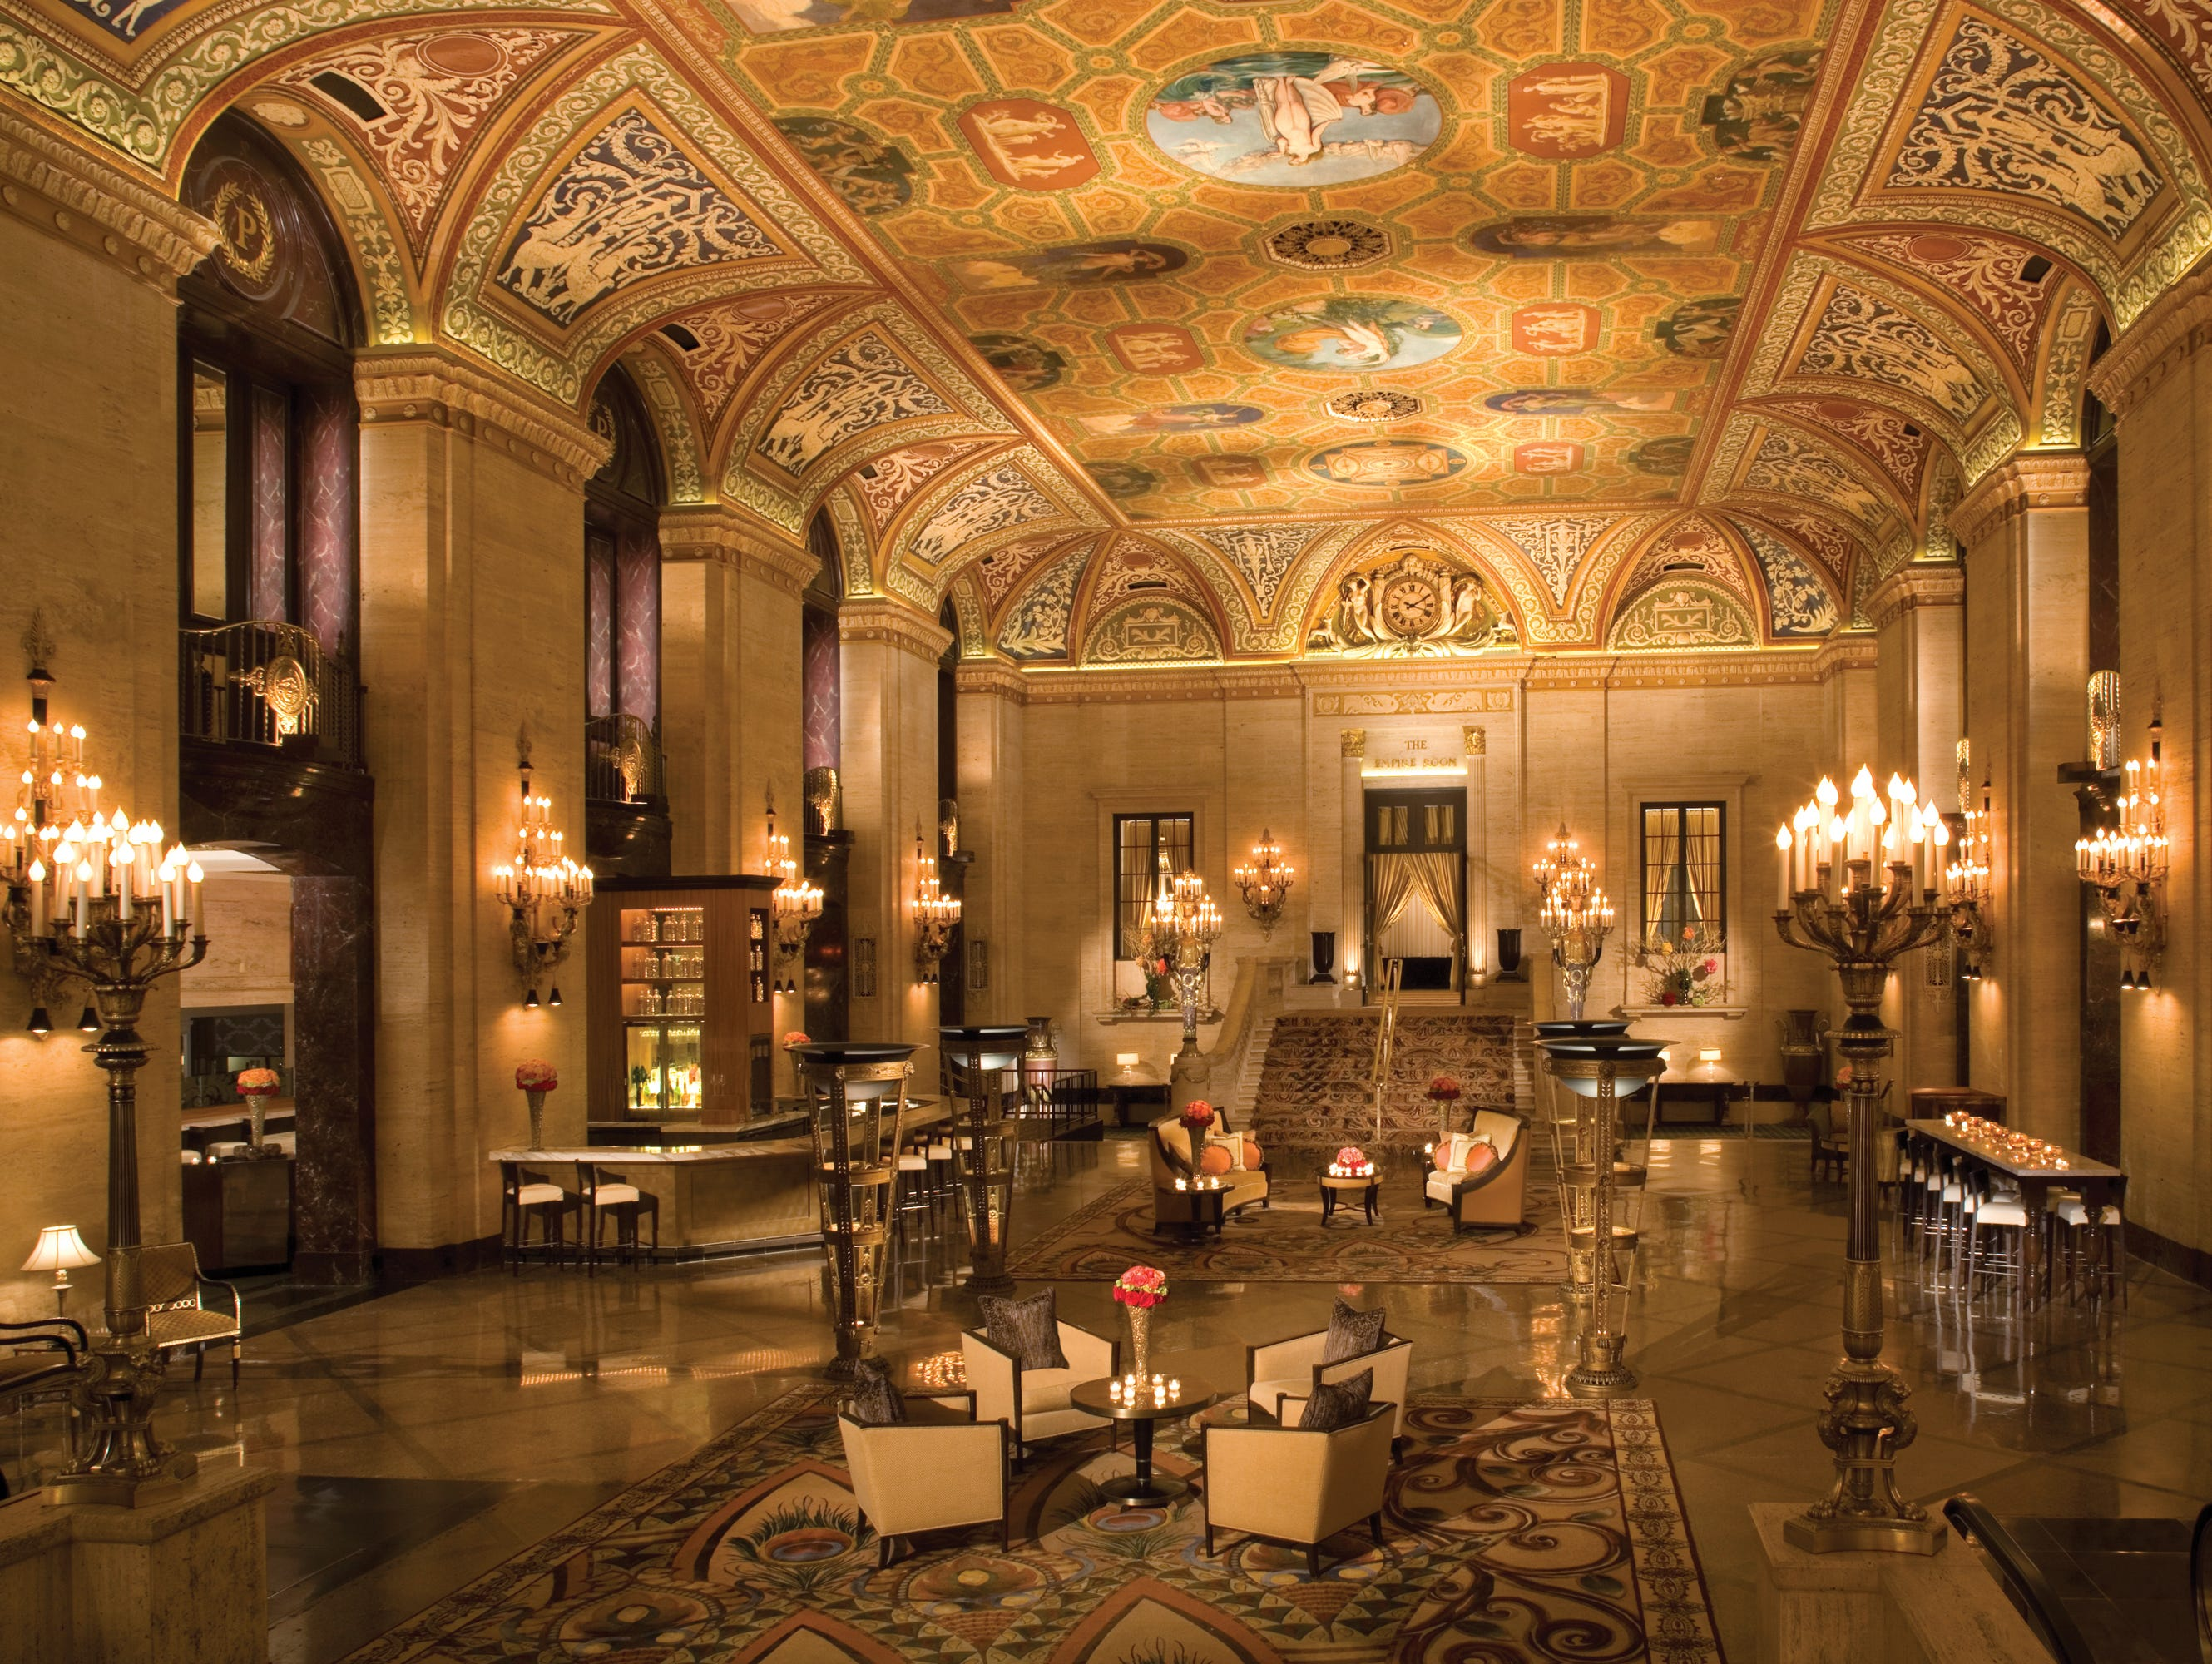 Chicago's Palmer House Hilton hotel's historic, turn-of-the-century charm and ambiance have been carefully restored and preserved.